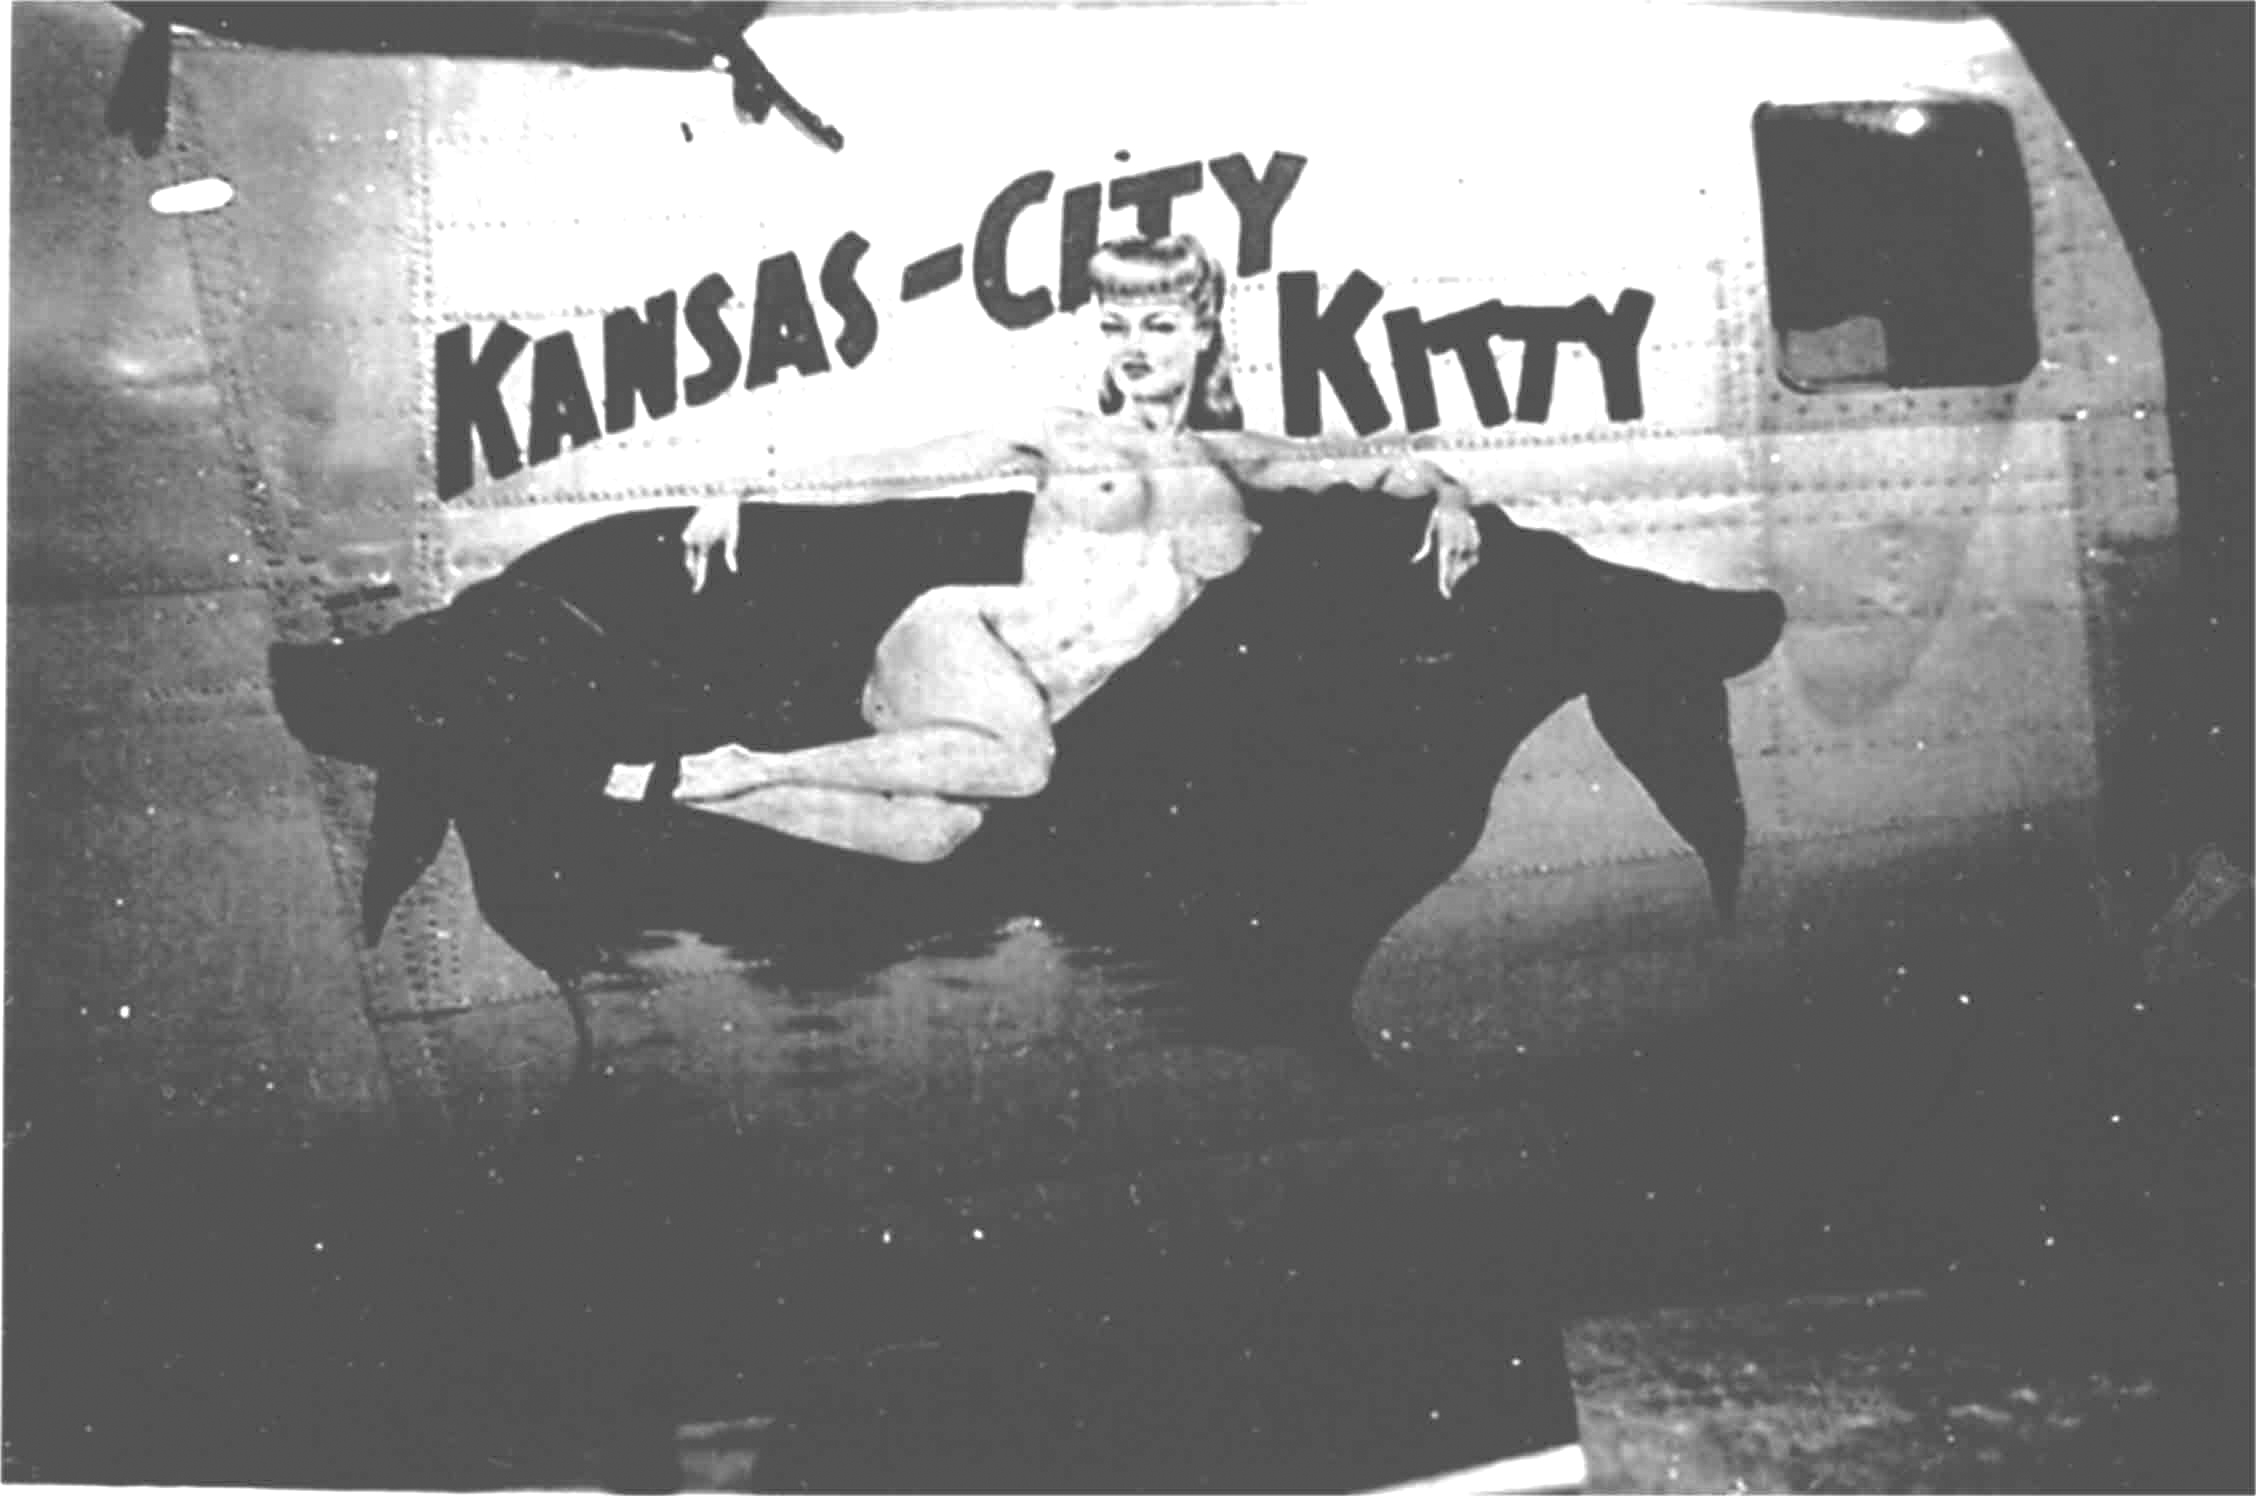 Kansas-City Kitty